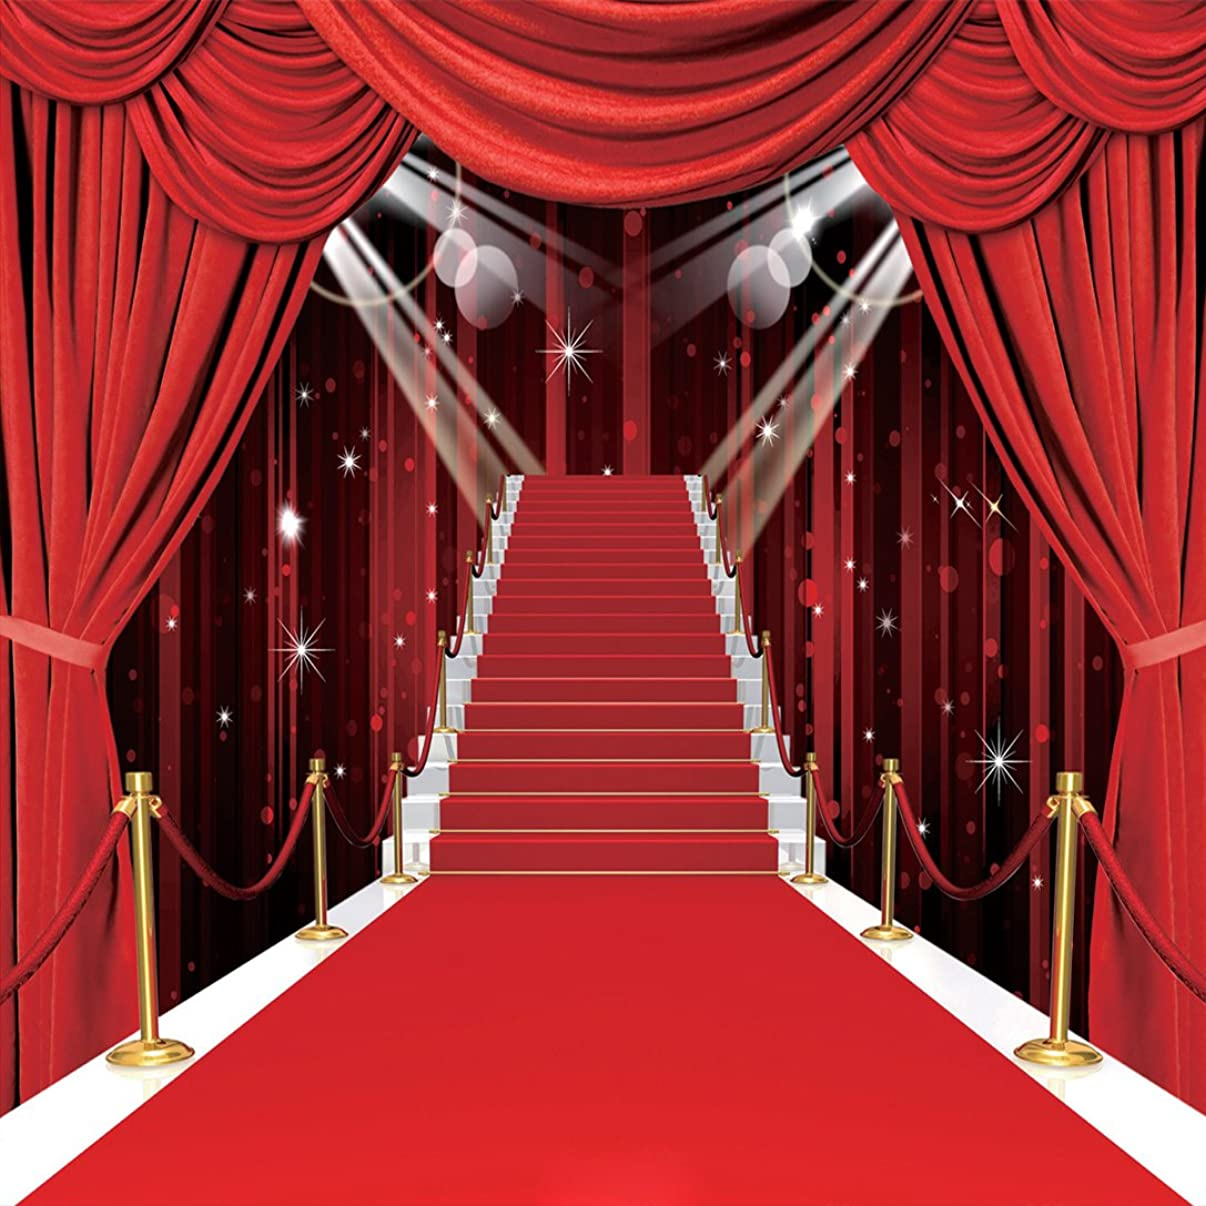 10x10ft Vinyl Photography Backdrop Stage Lighting Red Carpet Background for Wedding Customized Photo Studio Props RM-032